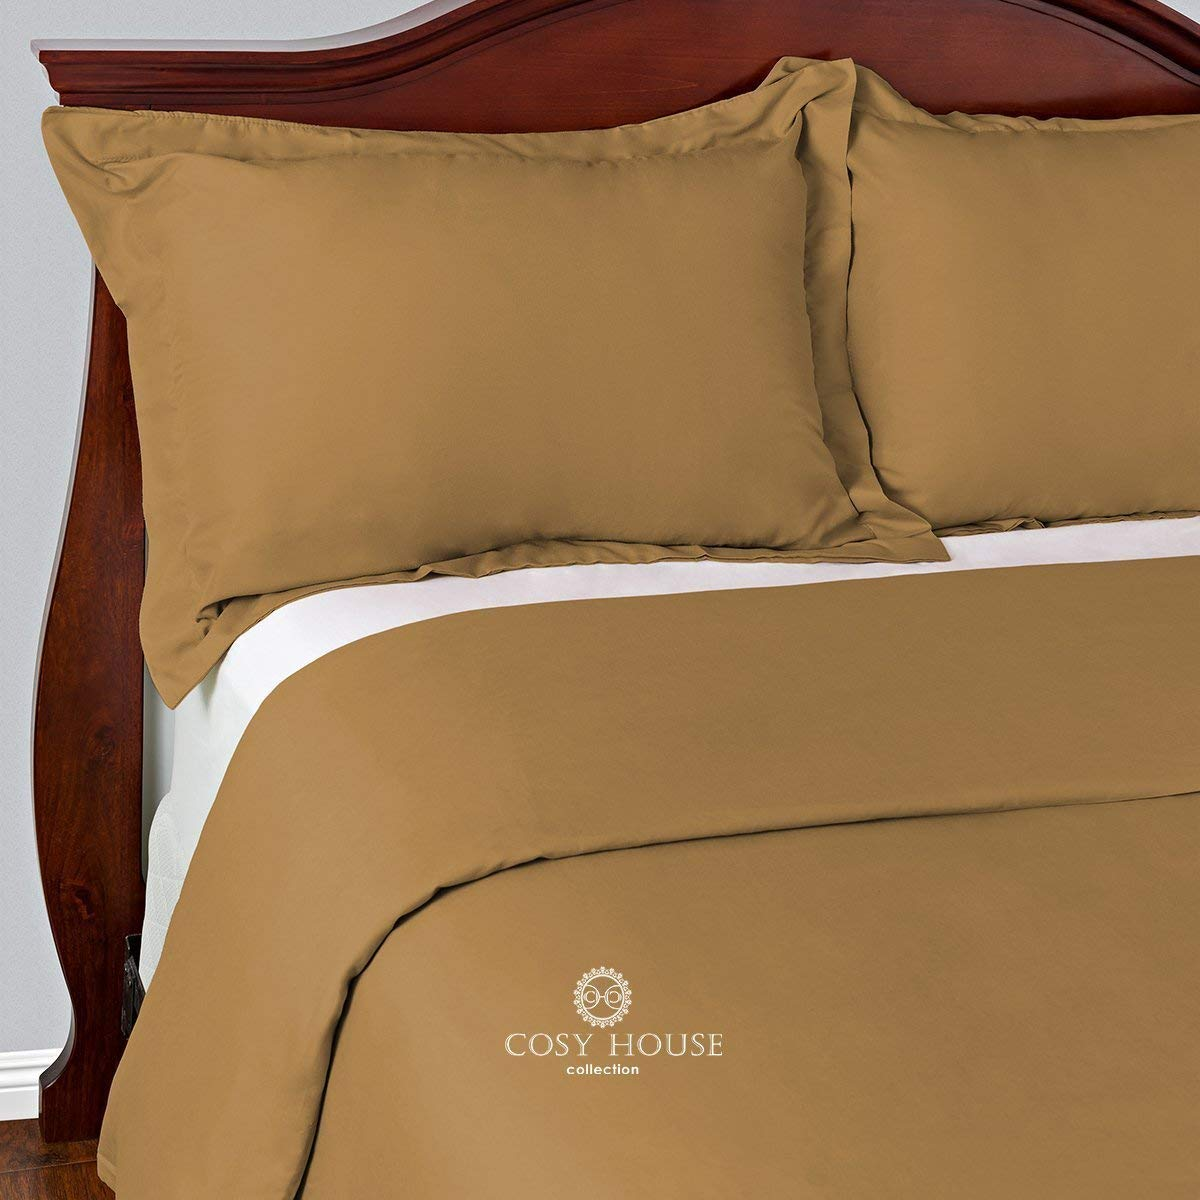 Cosy House Collection Duvet Cover Set - 1500 Series Ultra Soft Hypoallergenic Luxury Hotel Quality Bedding - Protects Comforters & Duvets Inserts - Includes 2 Pillow Shams (King/Cal King, Gold)